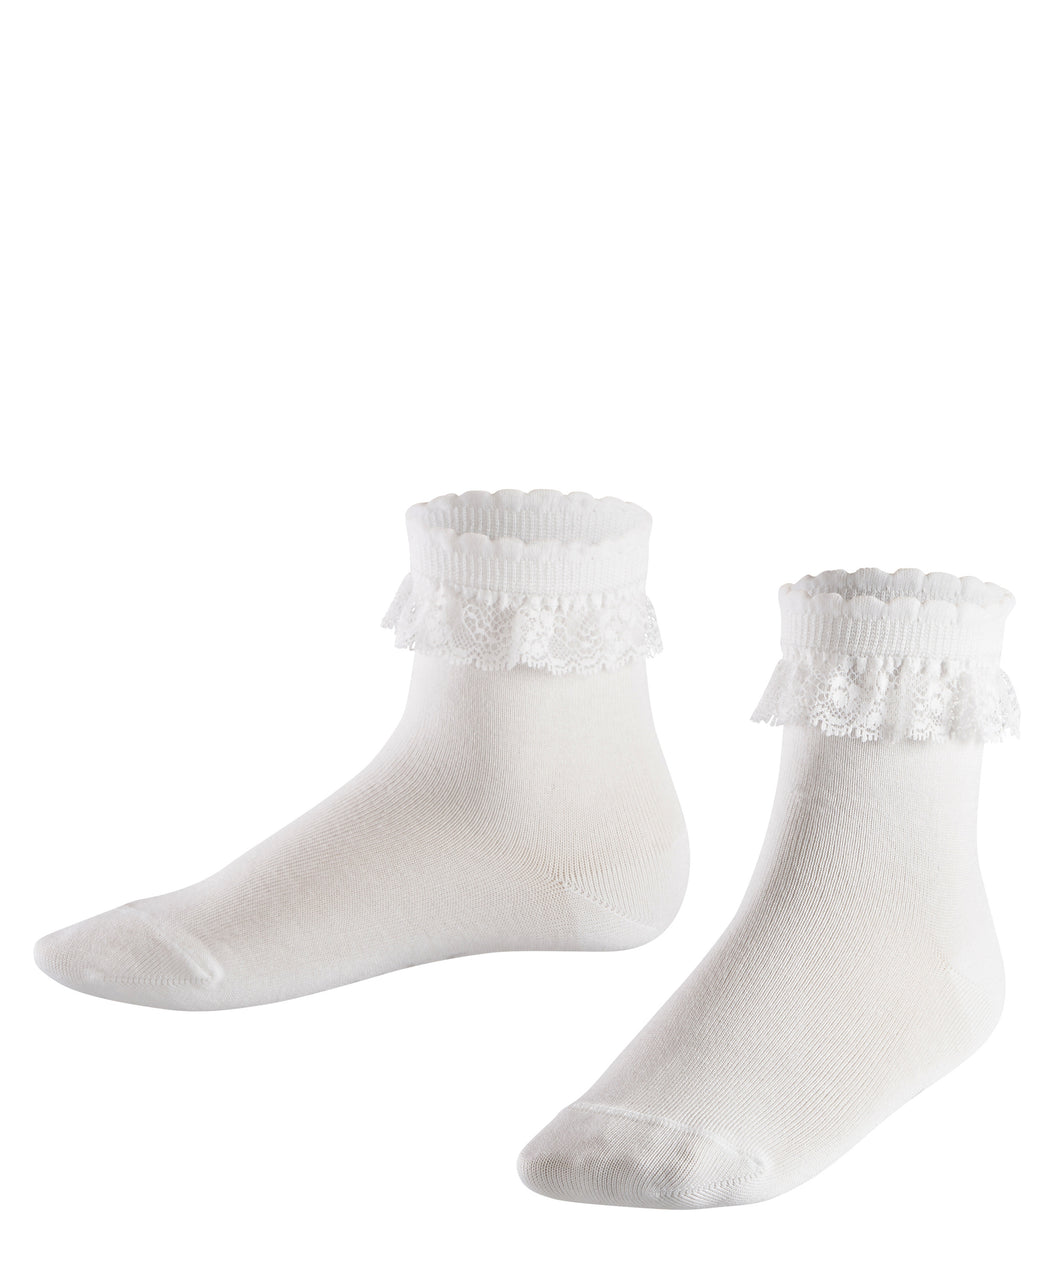 White Socks Romantic Lace